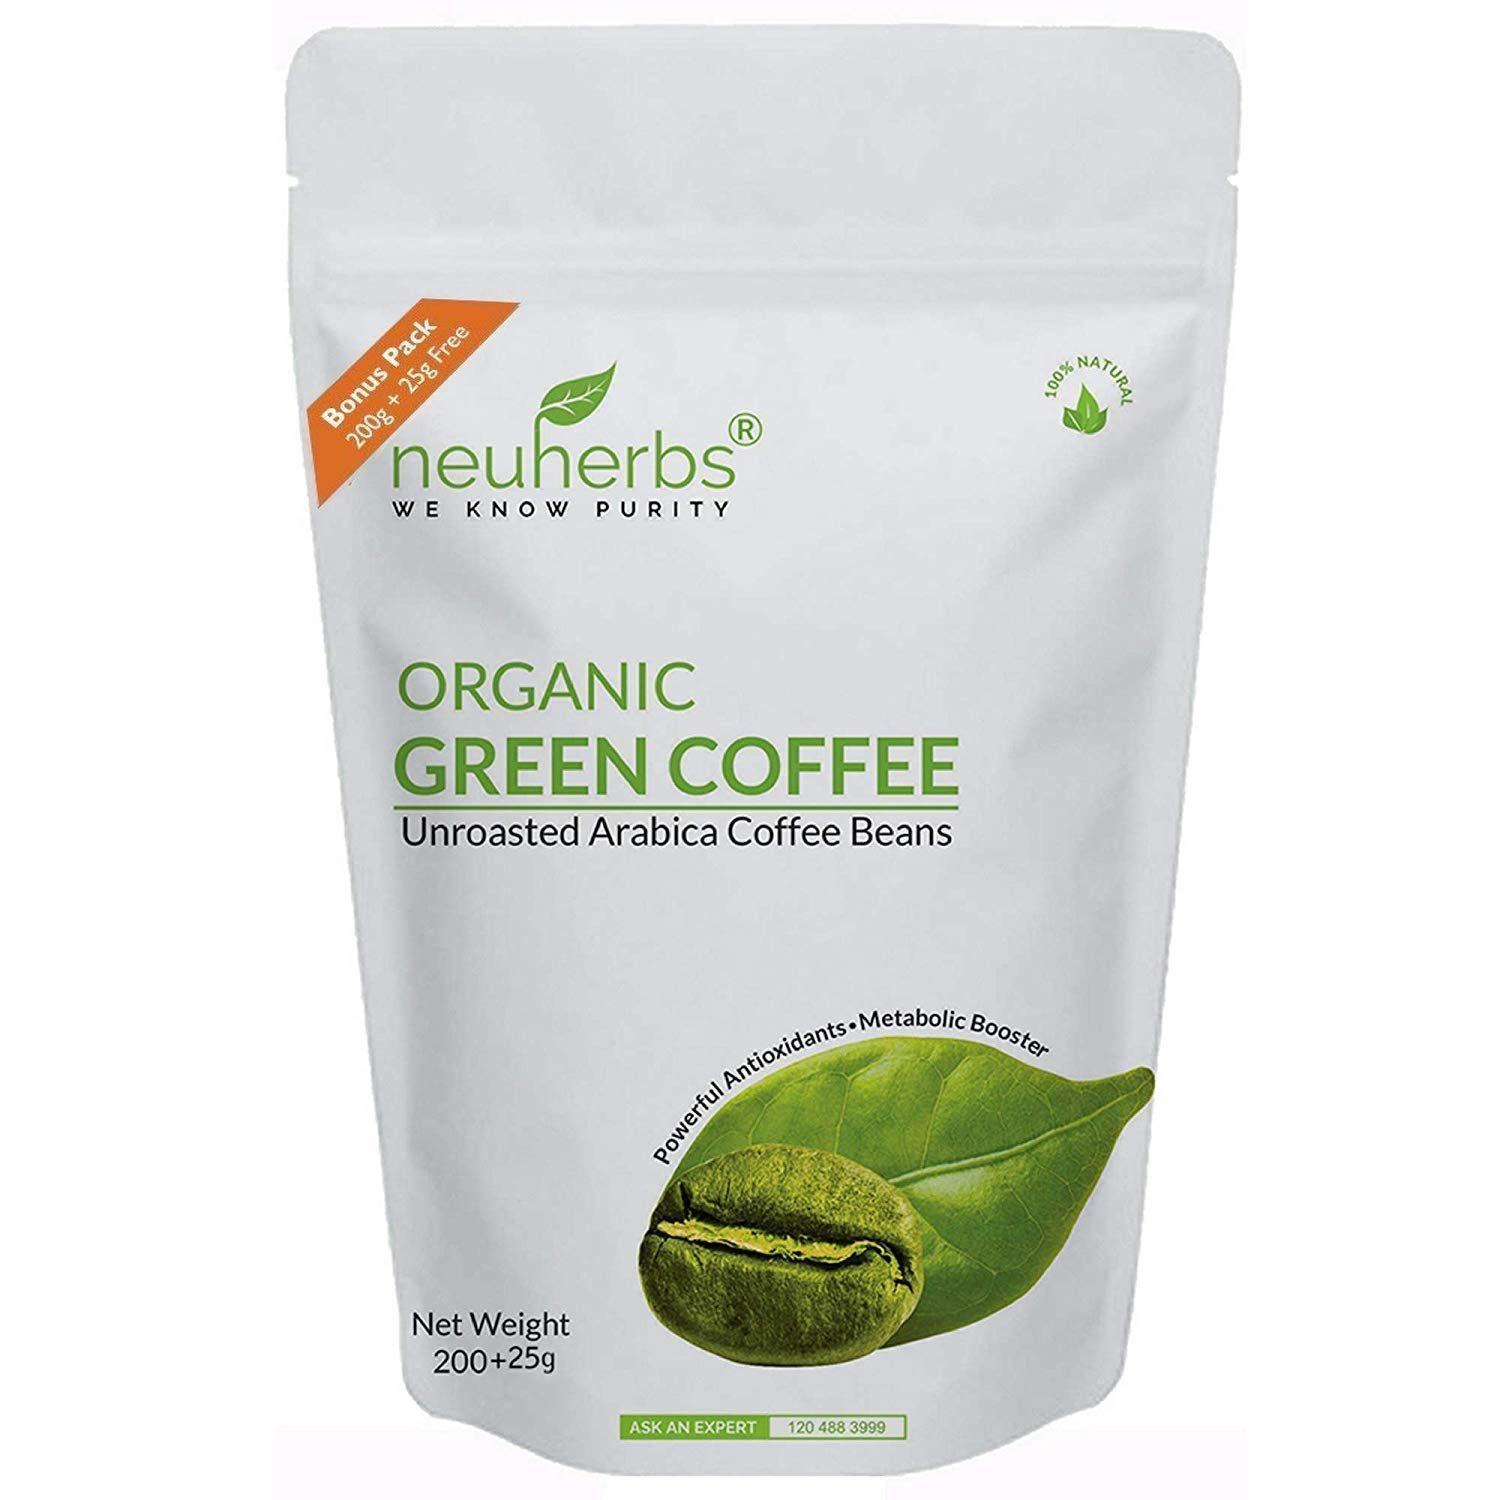 Buy Neuherbs Organic Green Coffee Beans For Weight Management 200g 25g Free Online At Low Prices In I With Images Green Coffee Green Coffee Bean Organic Green Coffee Beans